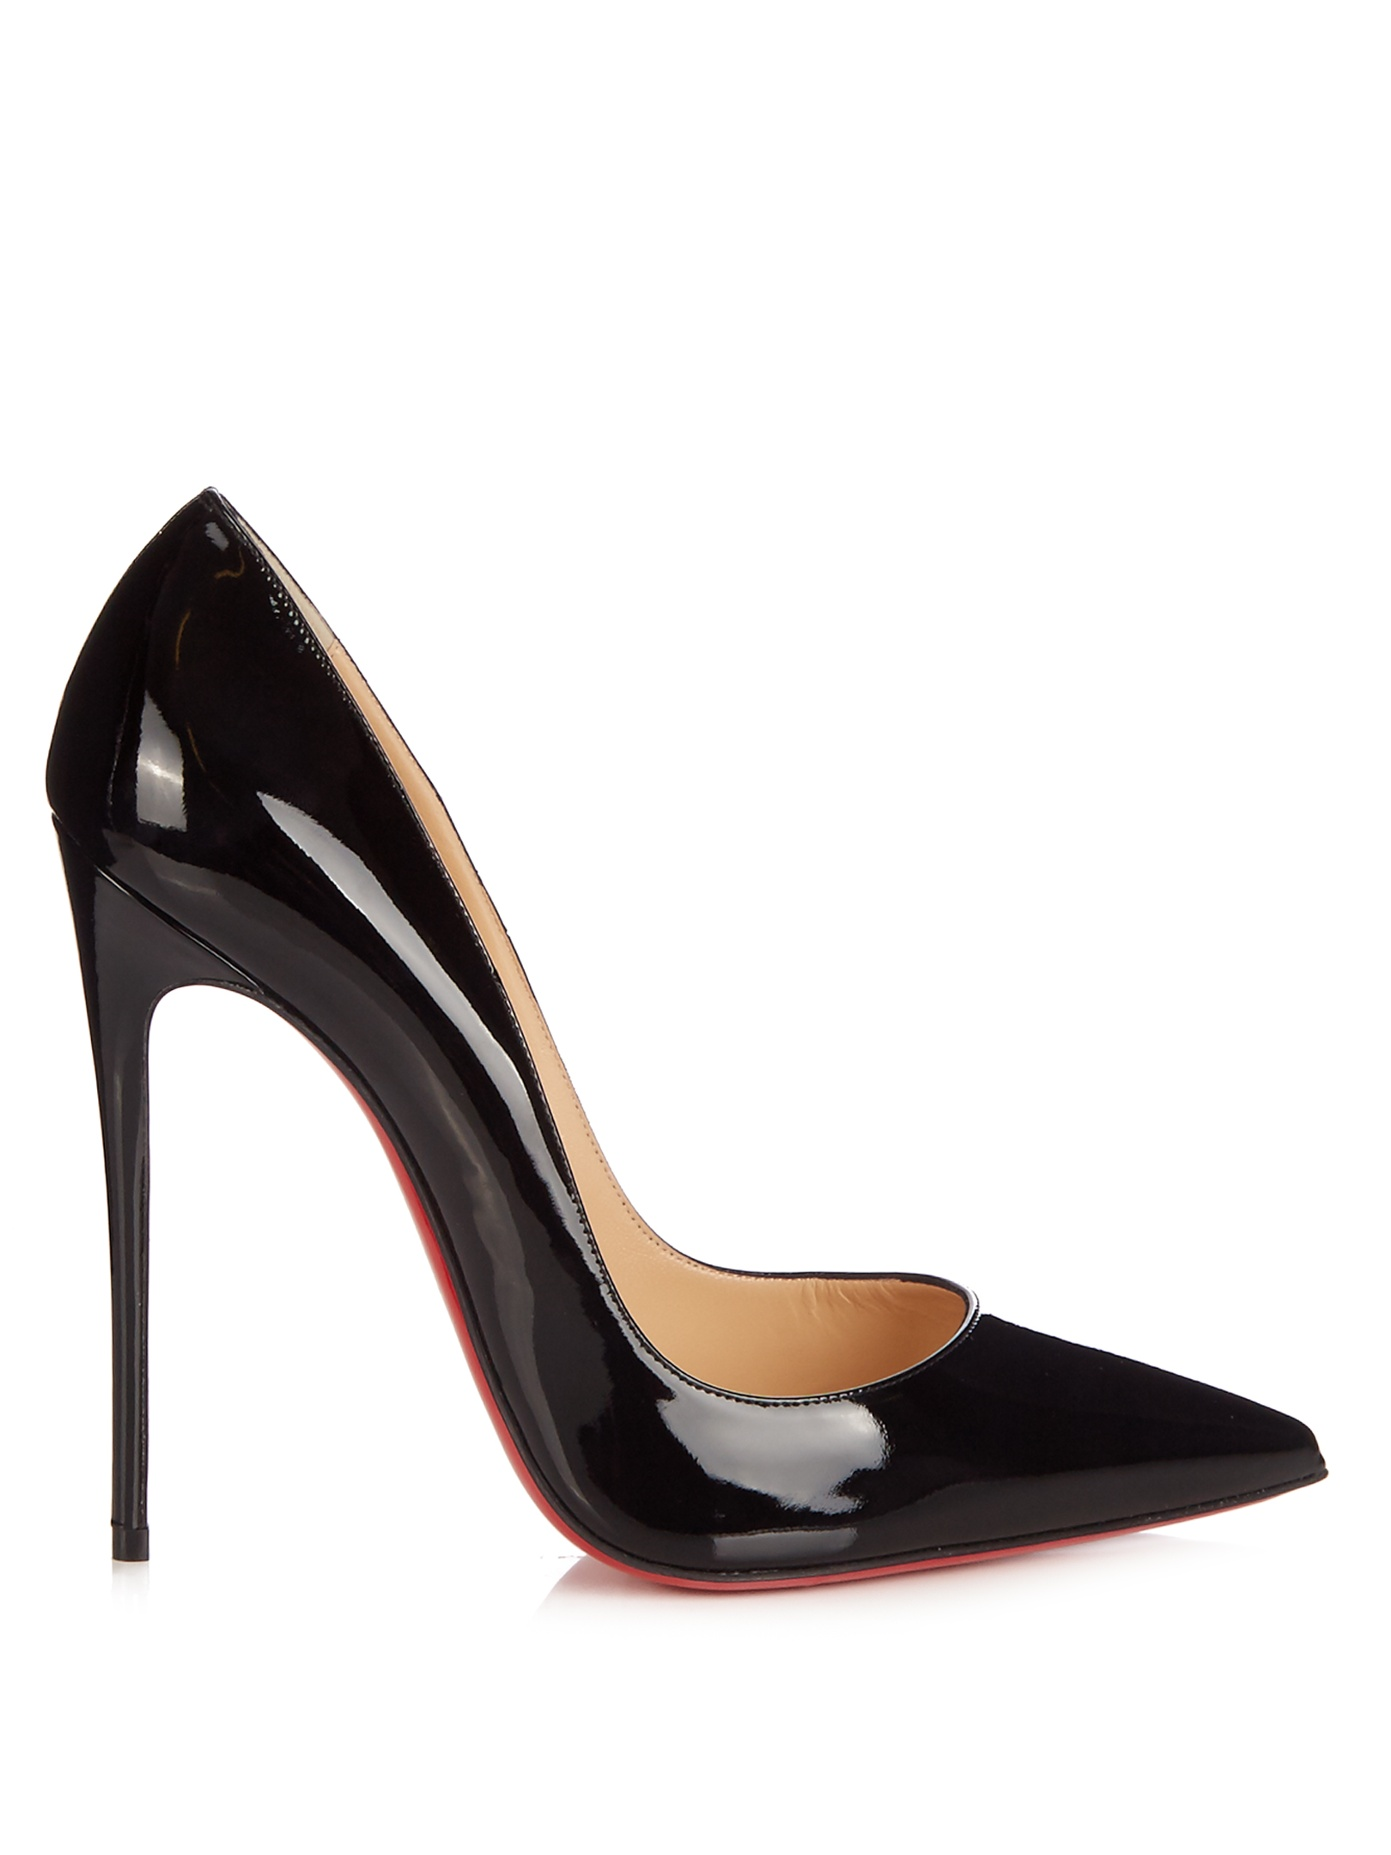 5cef4a45fa2e Christian Louboutin So Kate in Black - Meghan s Mirror